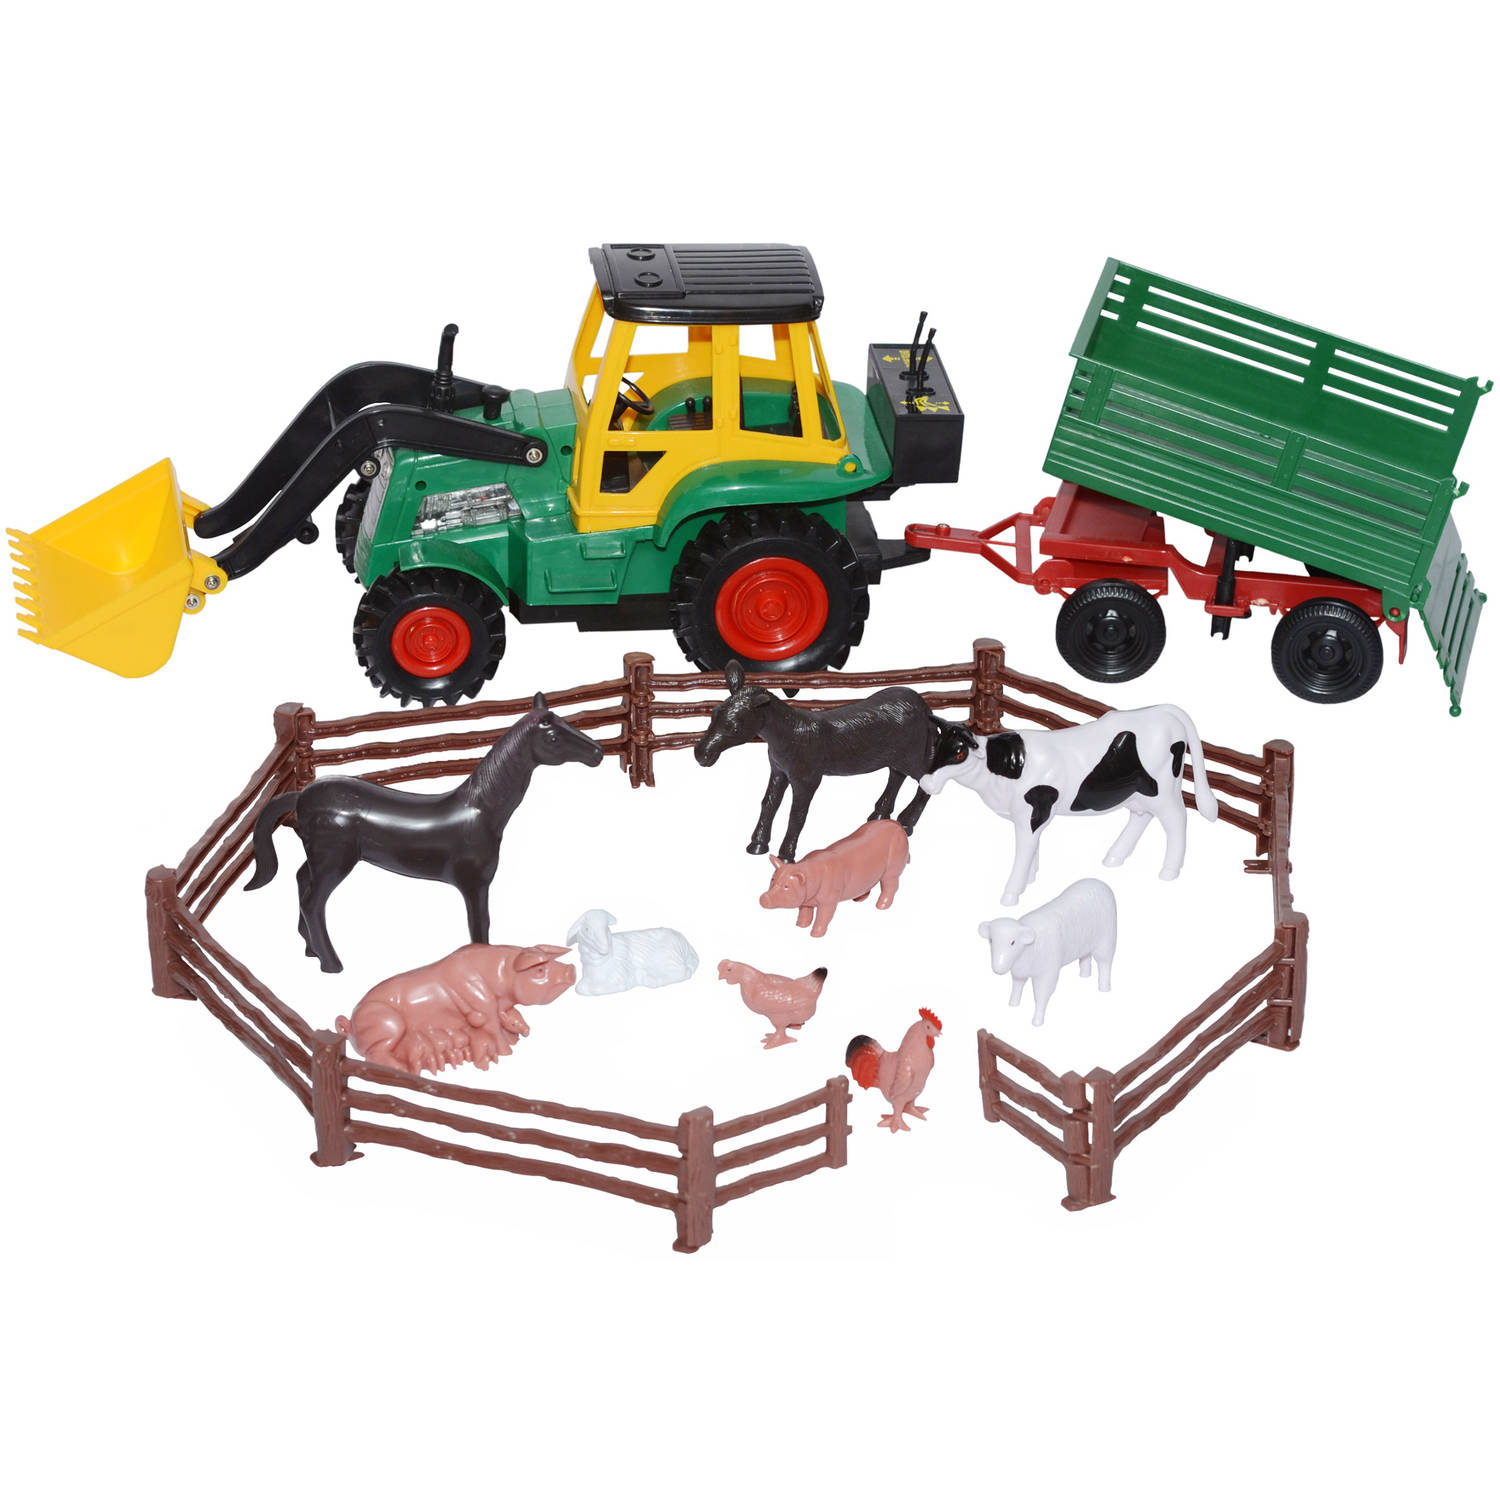 Skyteam Technology Farm Tractor Set with Animals by Skyteam Technology